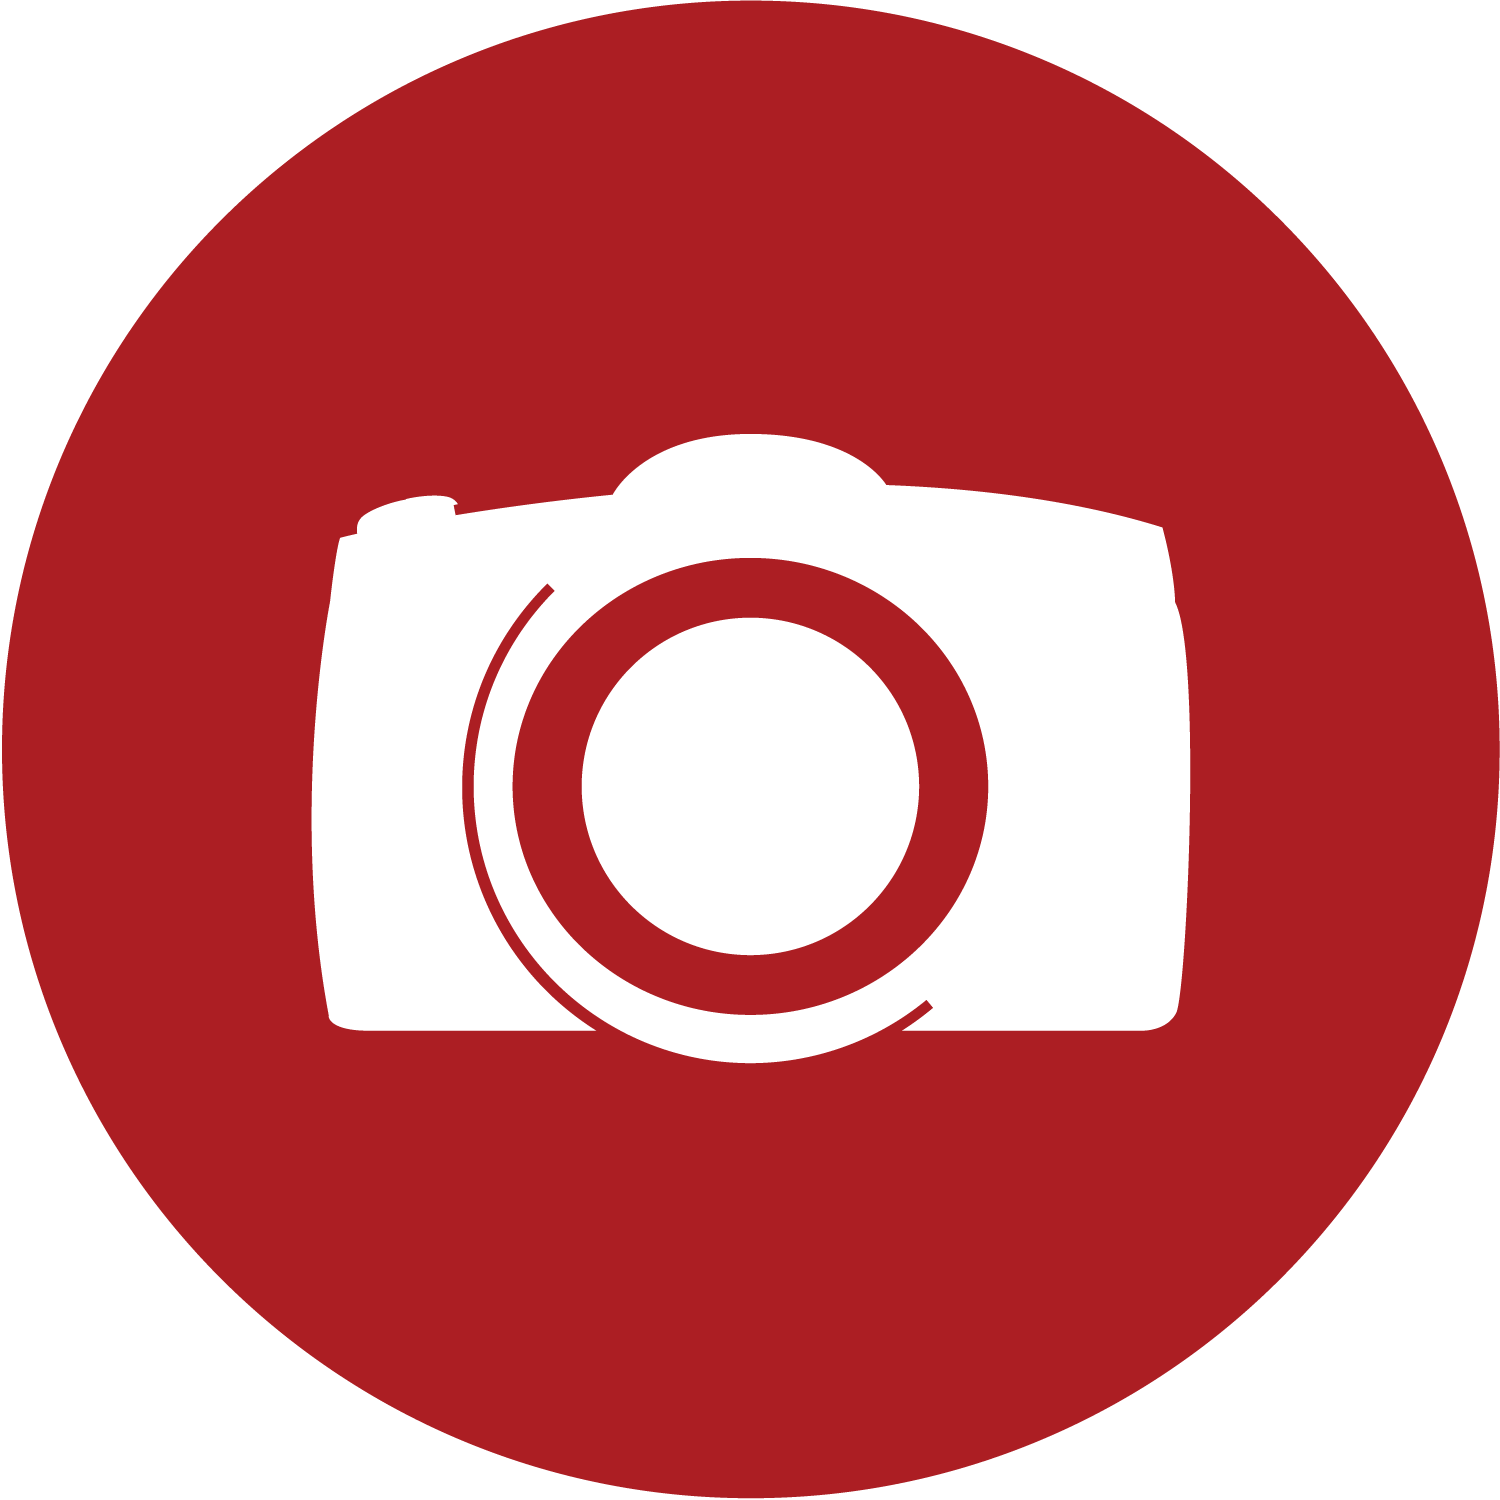 red circle camera logo cliparts #7134